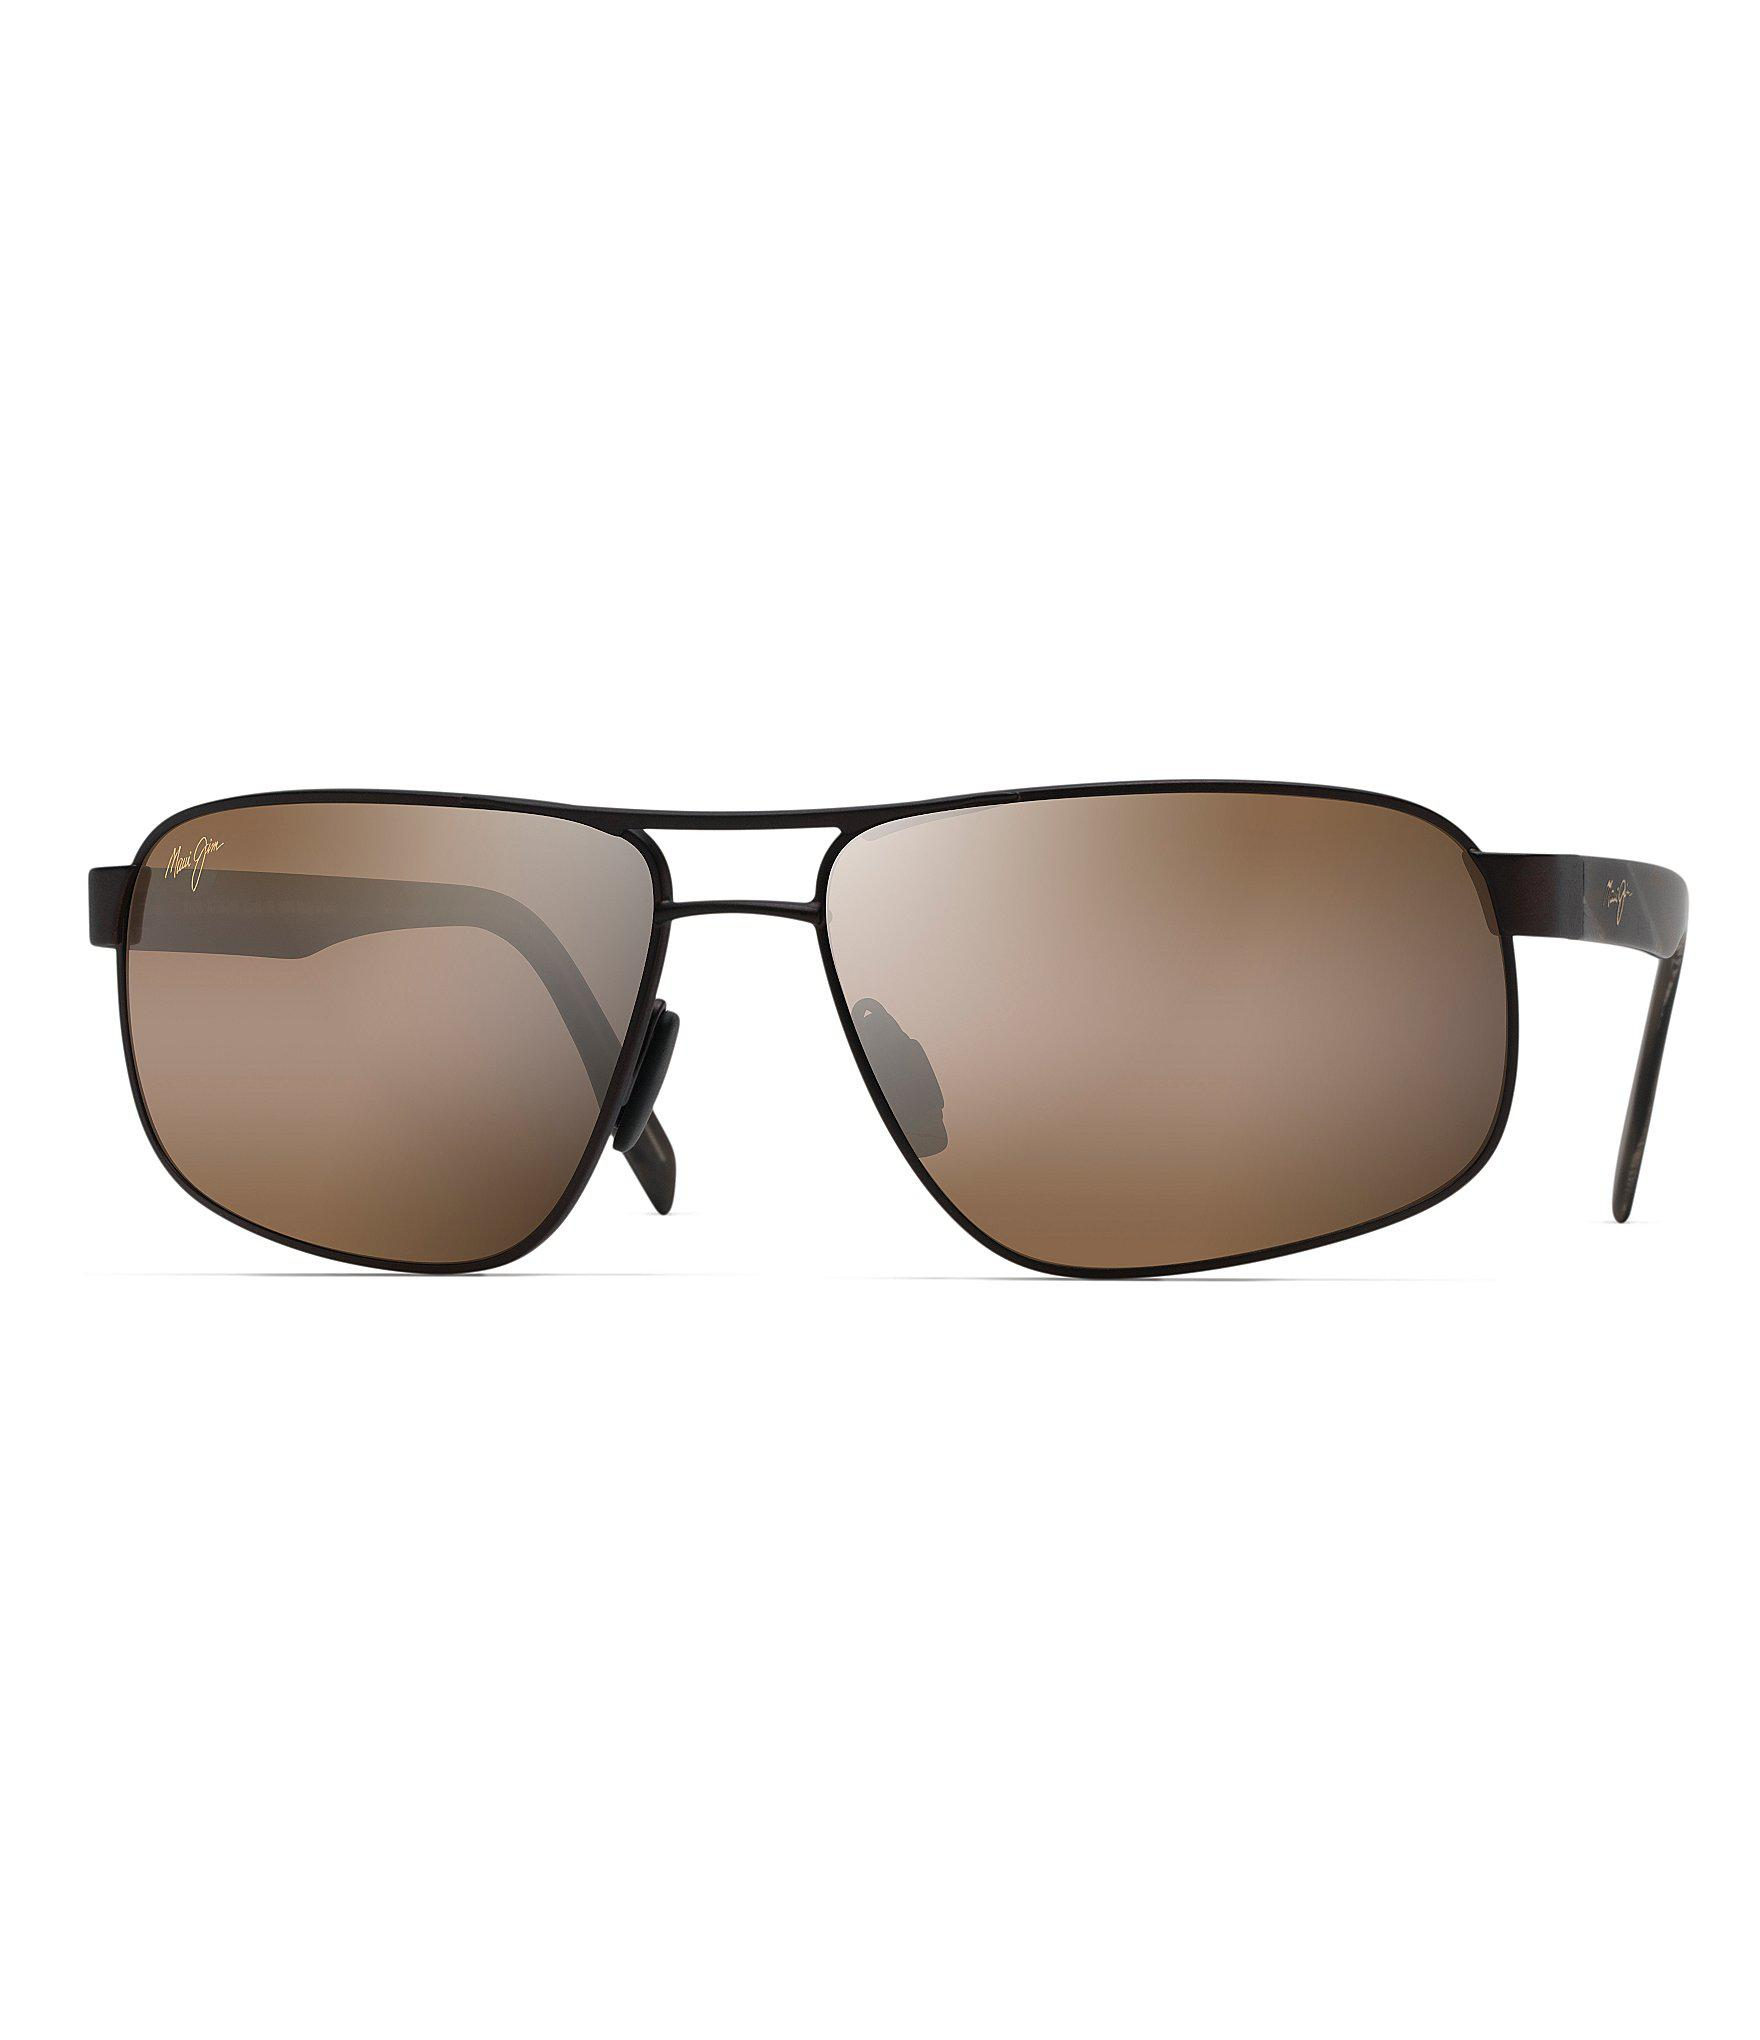 785486a22f60 Maui Jim Whitehaven Polarized Sunglasses in Brown for Men - Lyst